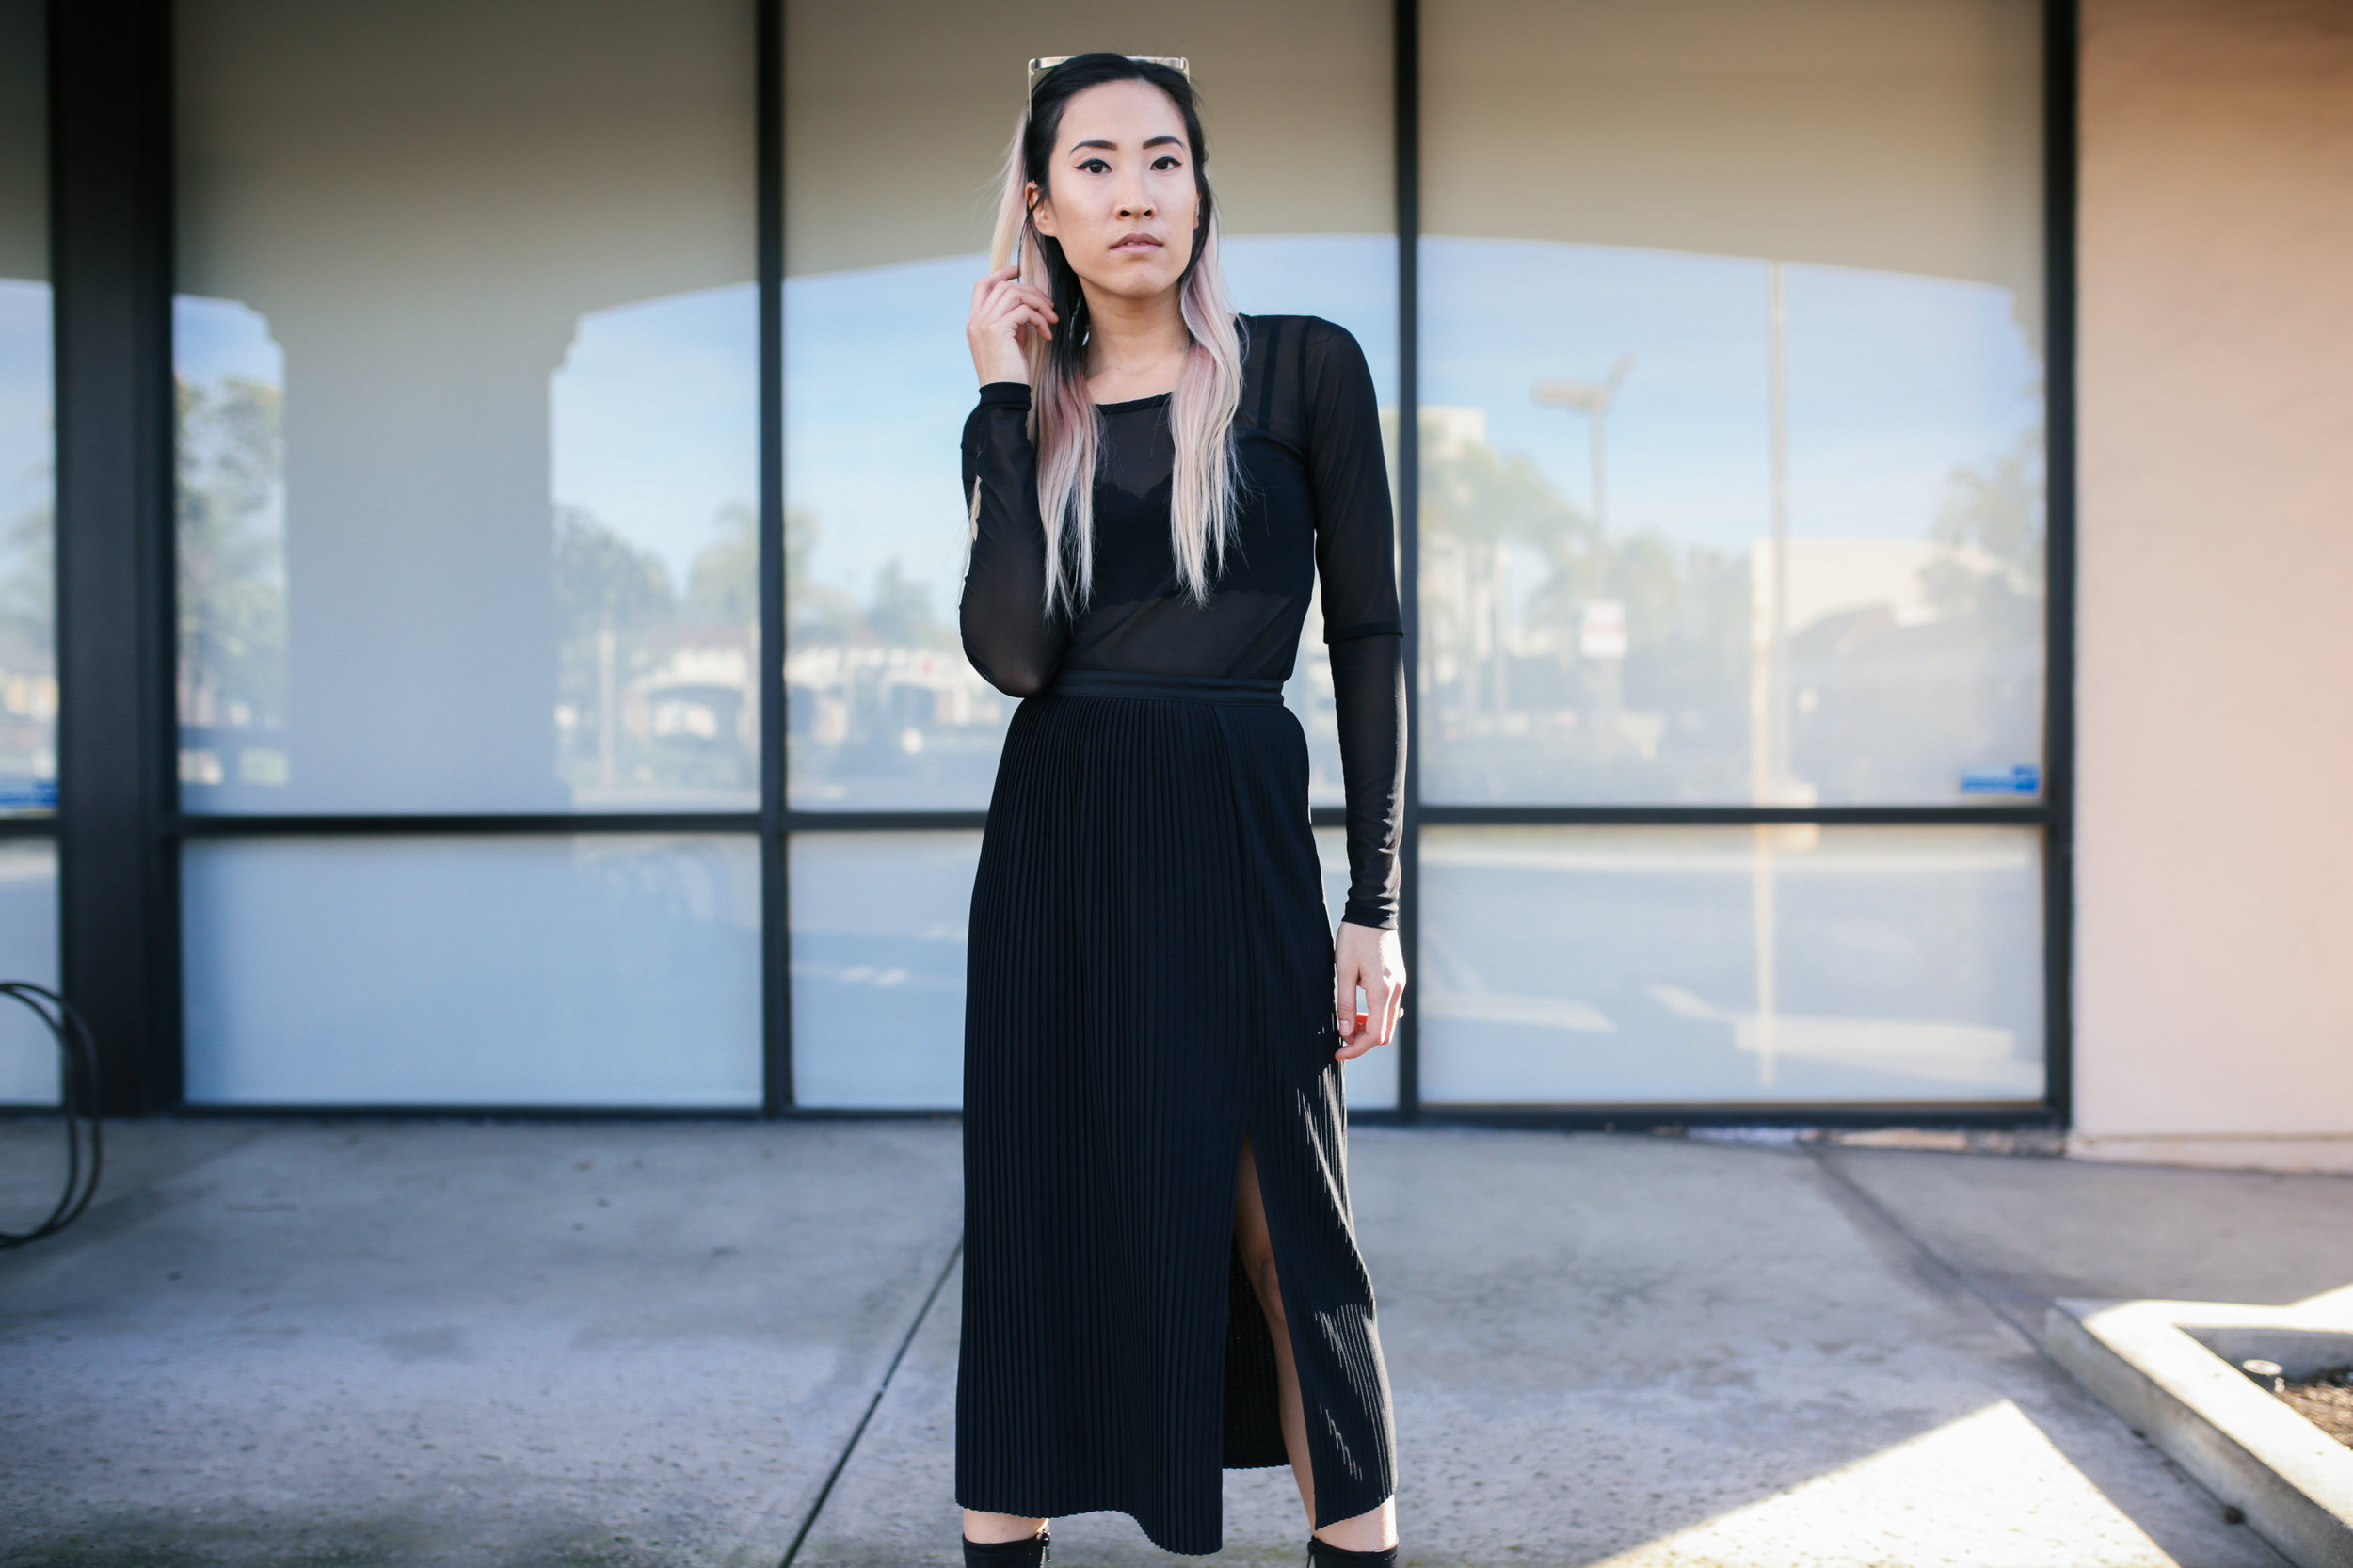 3-black-dress-amanda-feastfashionfaves-ryanbyryanchua-2890.jpg